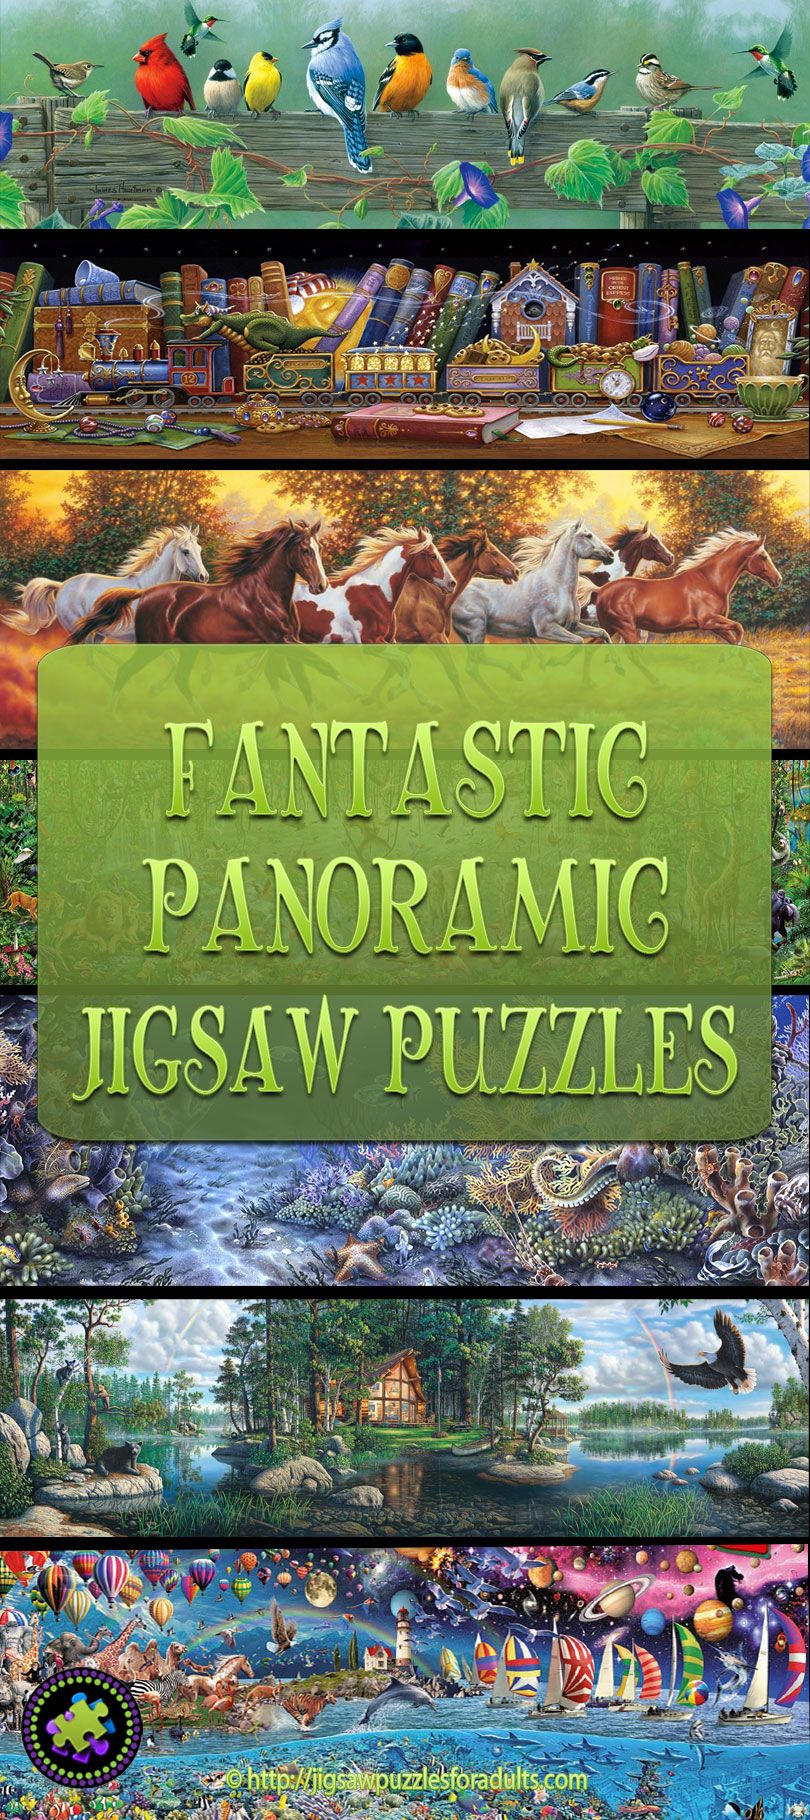 Jigsaw Puzzles 1000 Pieces for Adults View of Pirna from The Sonnenstein Castle Challenging Puzzle Difficult Puzzles Large Puzzle Game Toys Gift 38.58 x 13.38 Inches